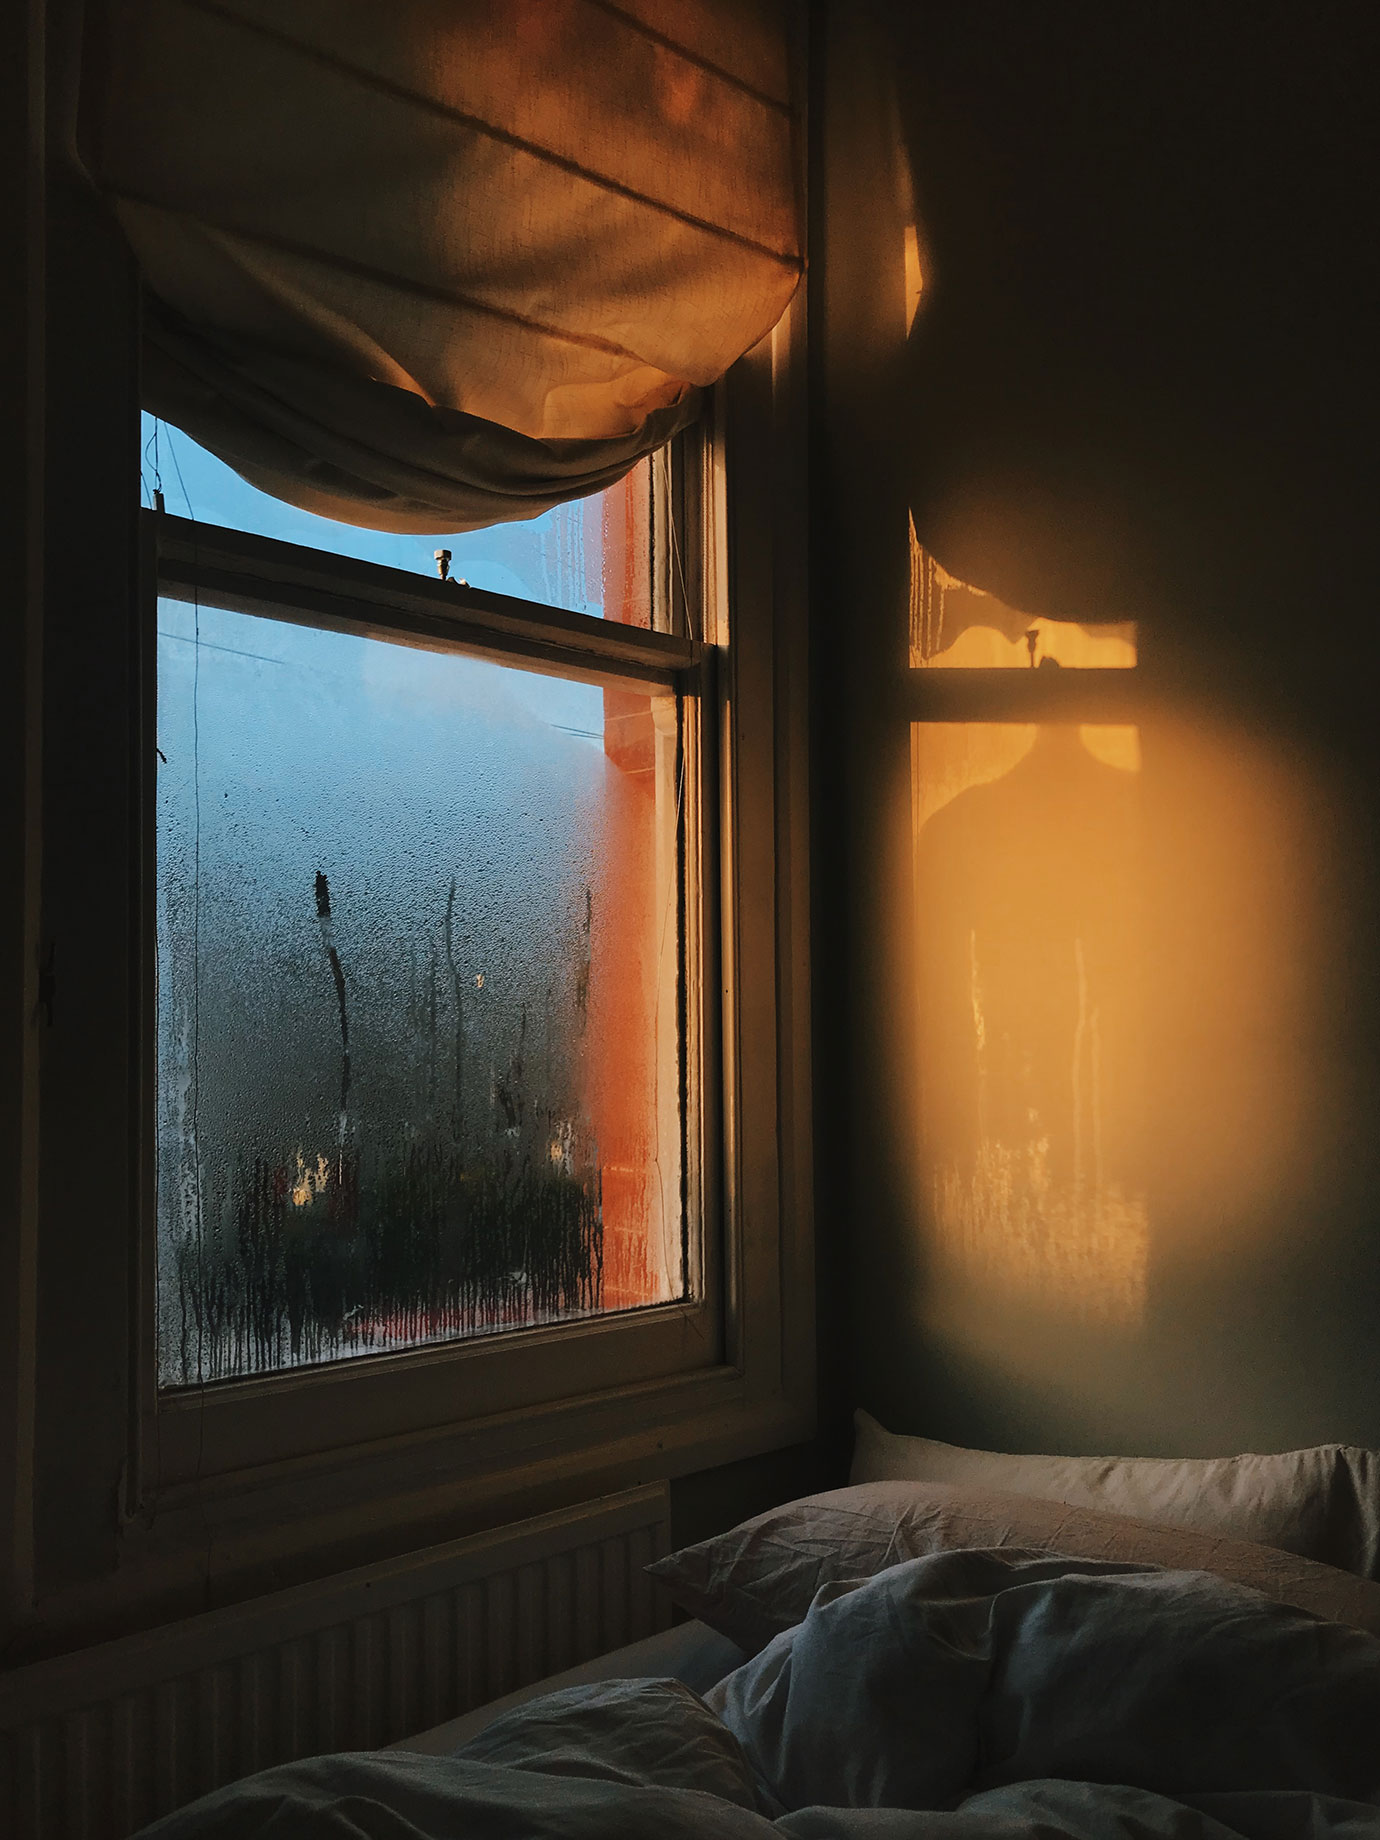 A bedroom window with dawn light.